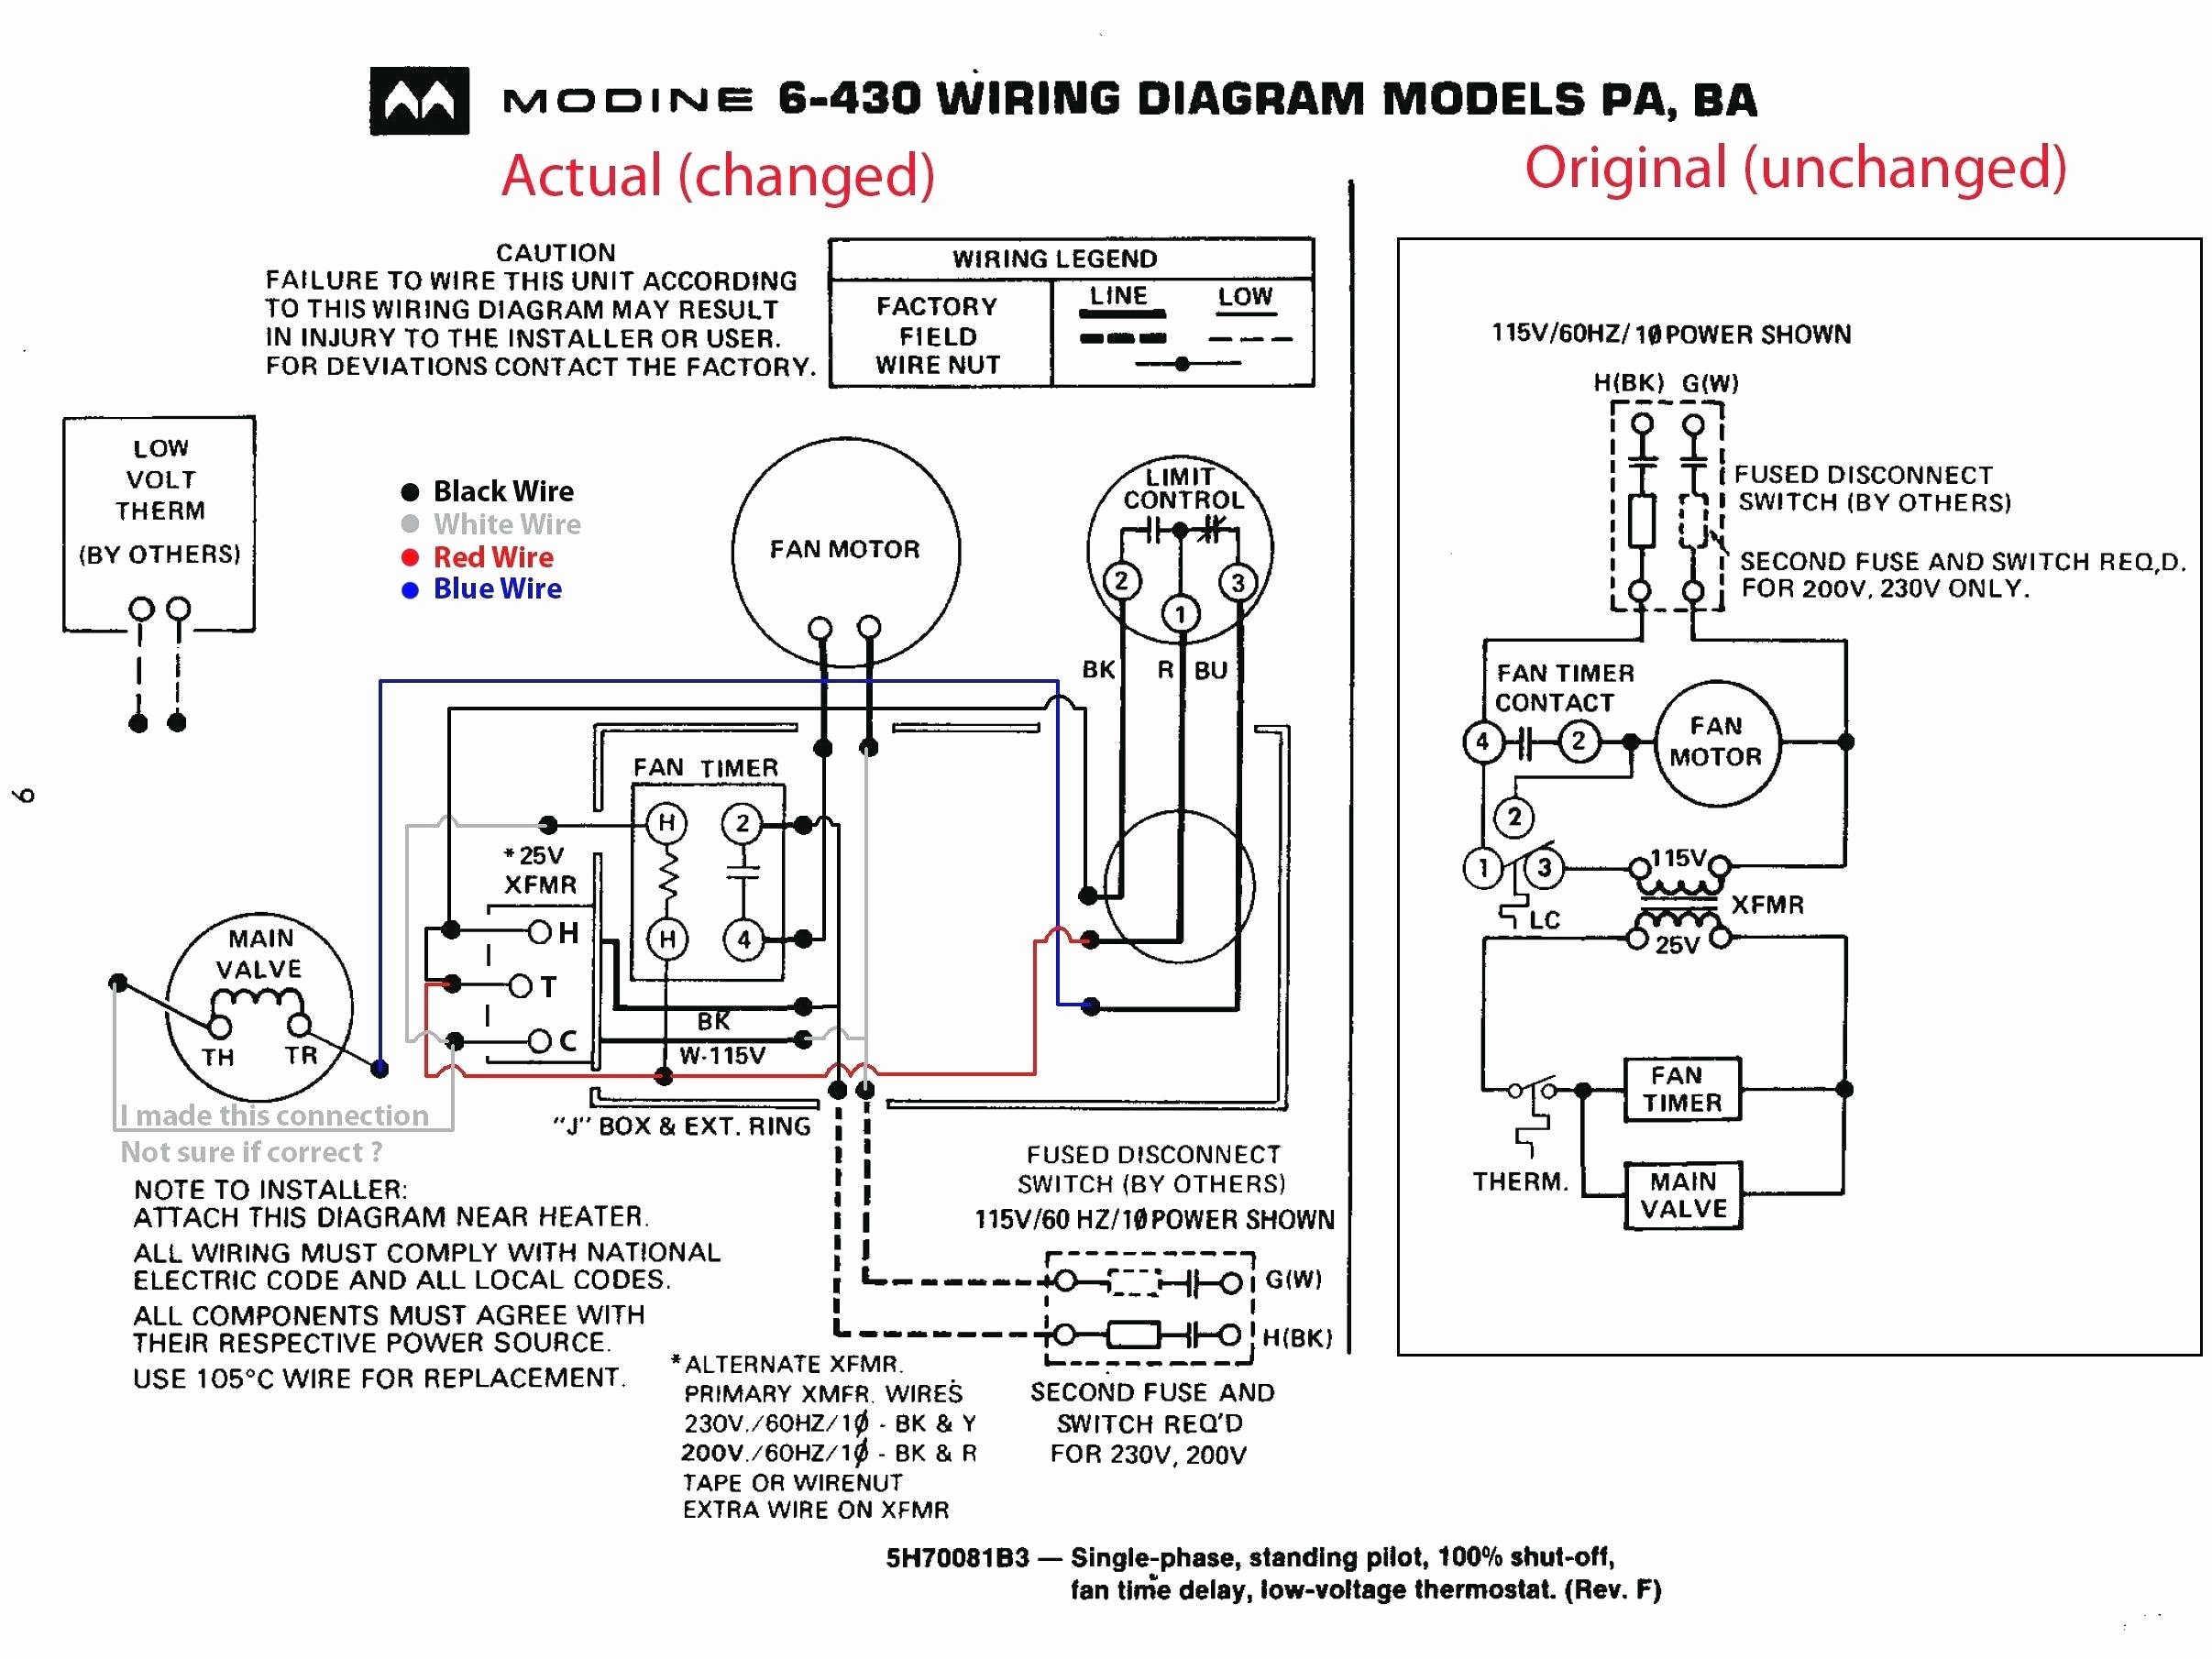 hayward super ii wiring diagram wiring diagram sump pump wiring diagram hayward super ii pump wiring diagram #3